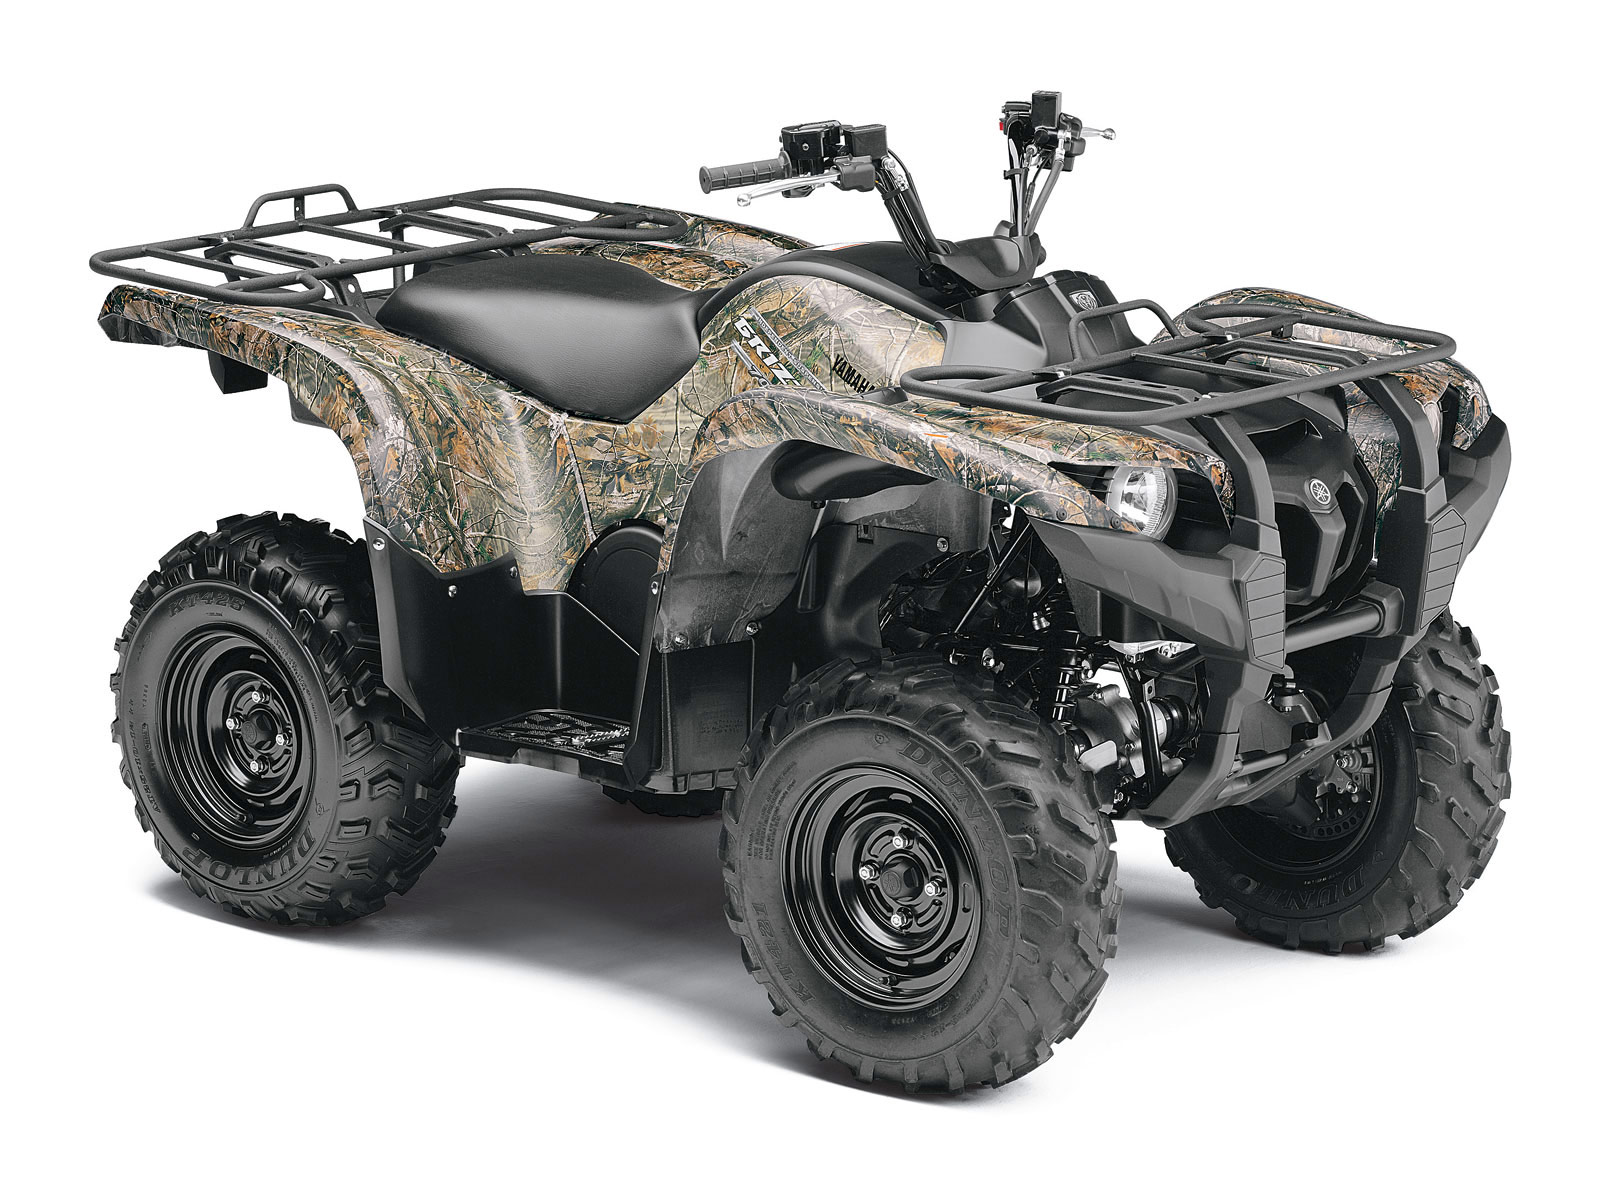 2011 yamaha grizzly 700 fi 4x4 atv pictures. Black Bedroom Furniture Sets. Home Design Ideas